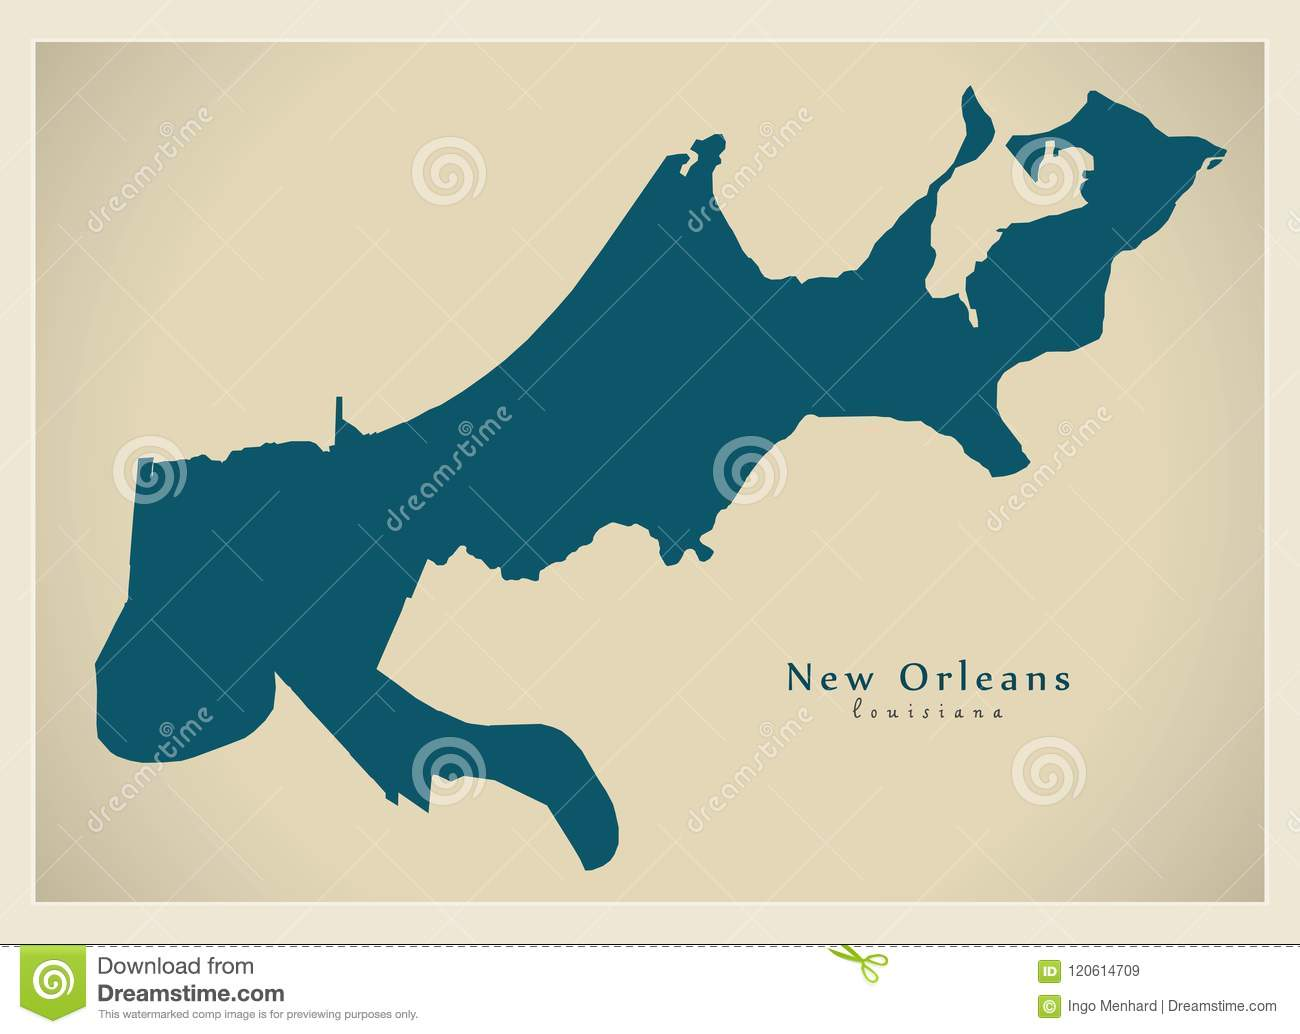 New Orleans In Usa Map.Modern City Map New Orleans Louisiana City Of The Usa Stock Vector